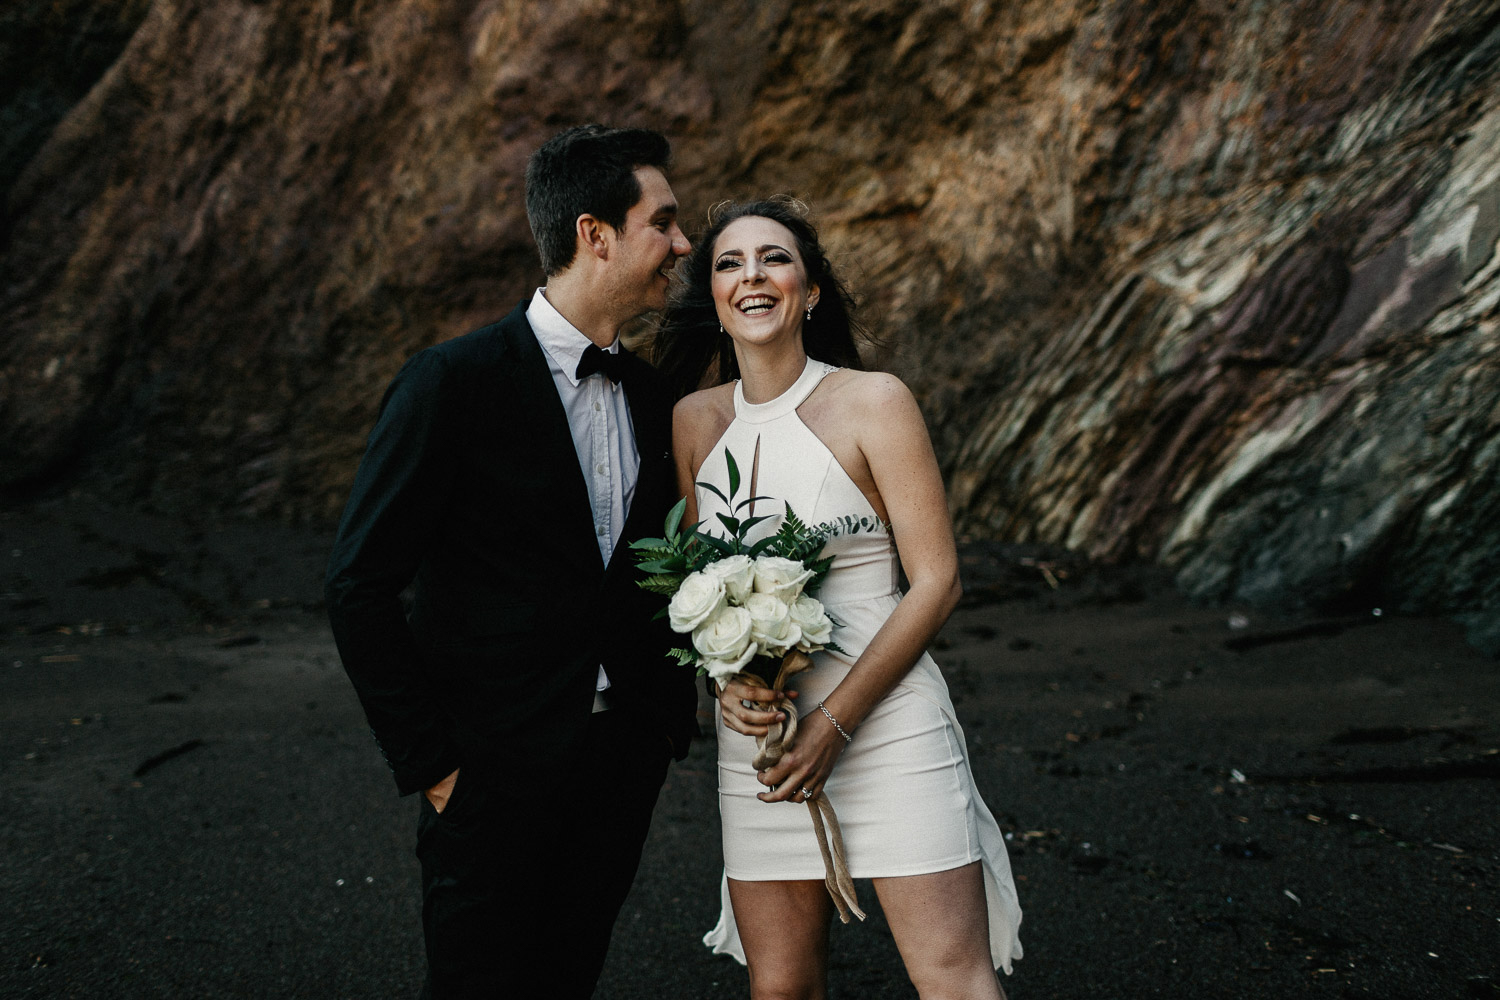 Image of bride and groom laugh together on beach